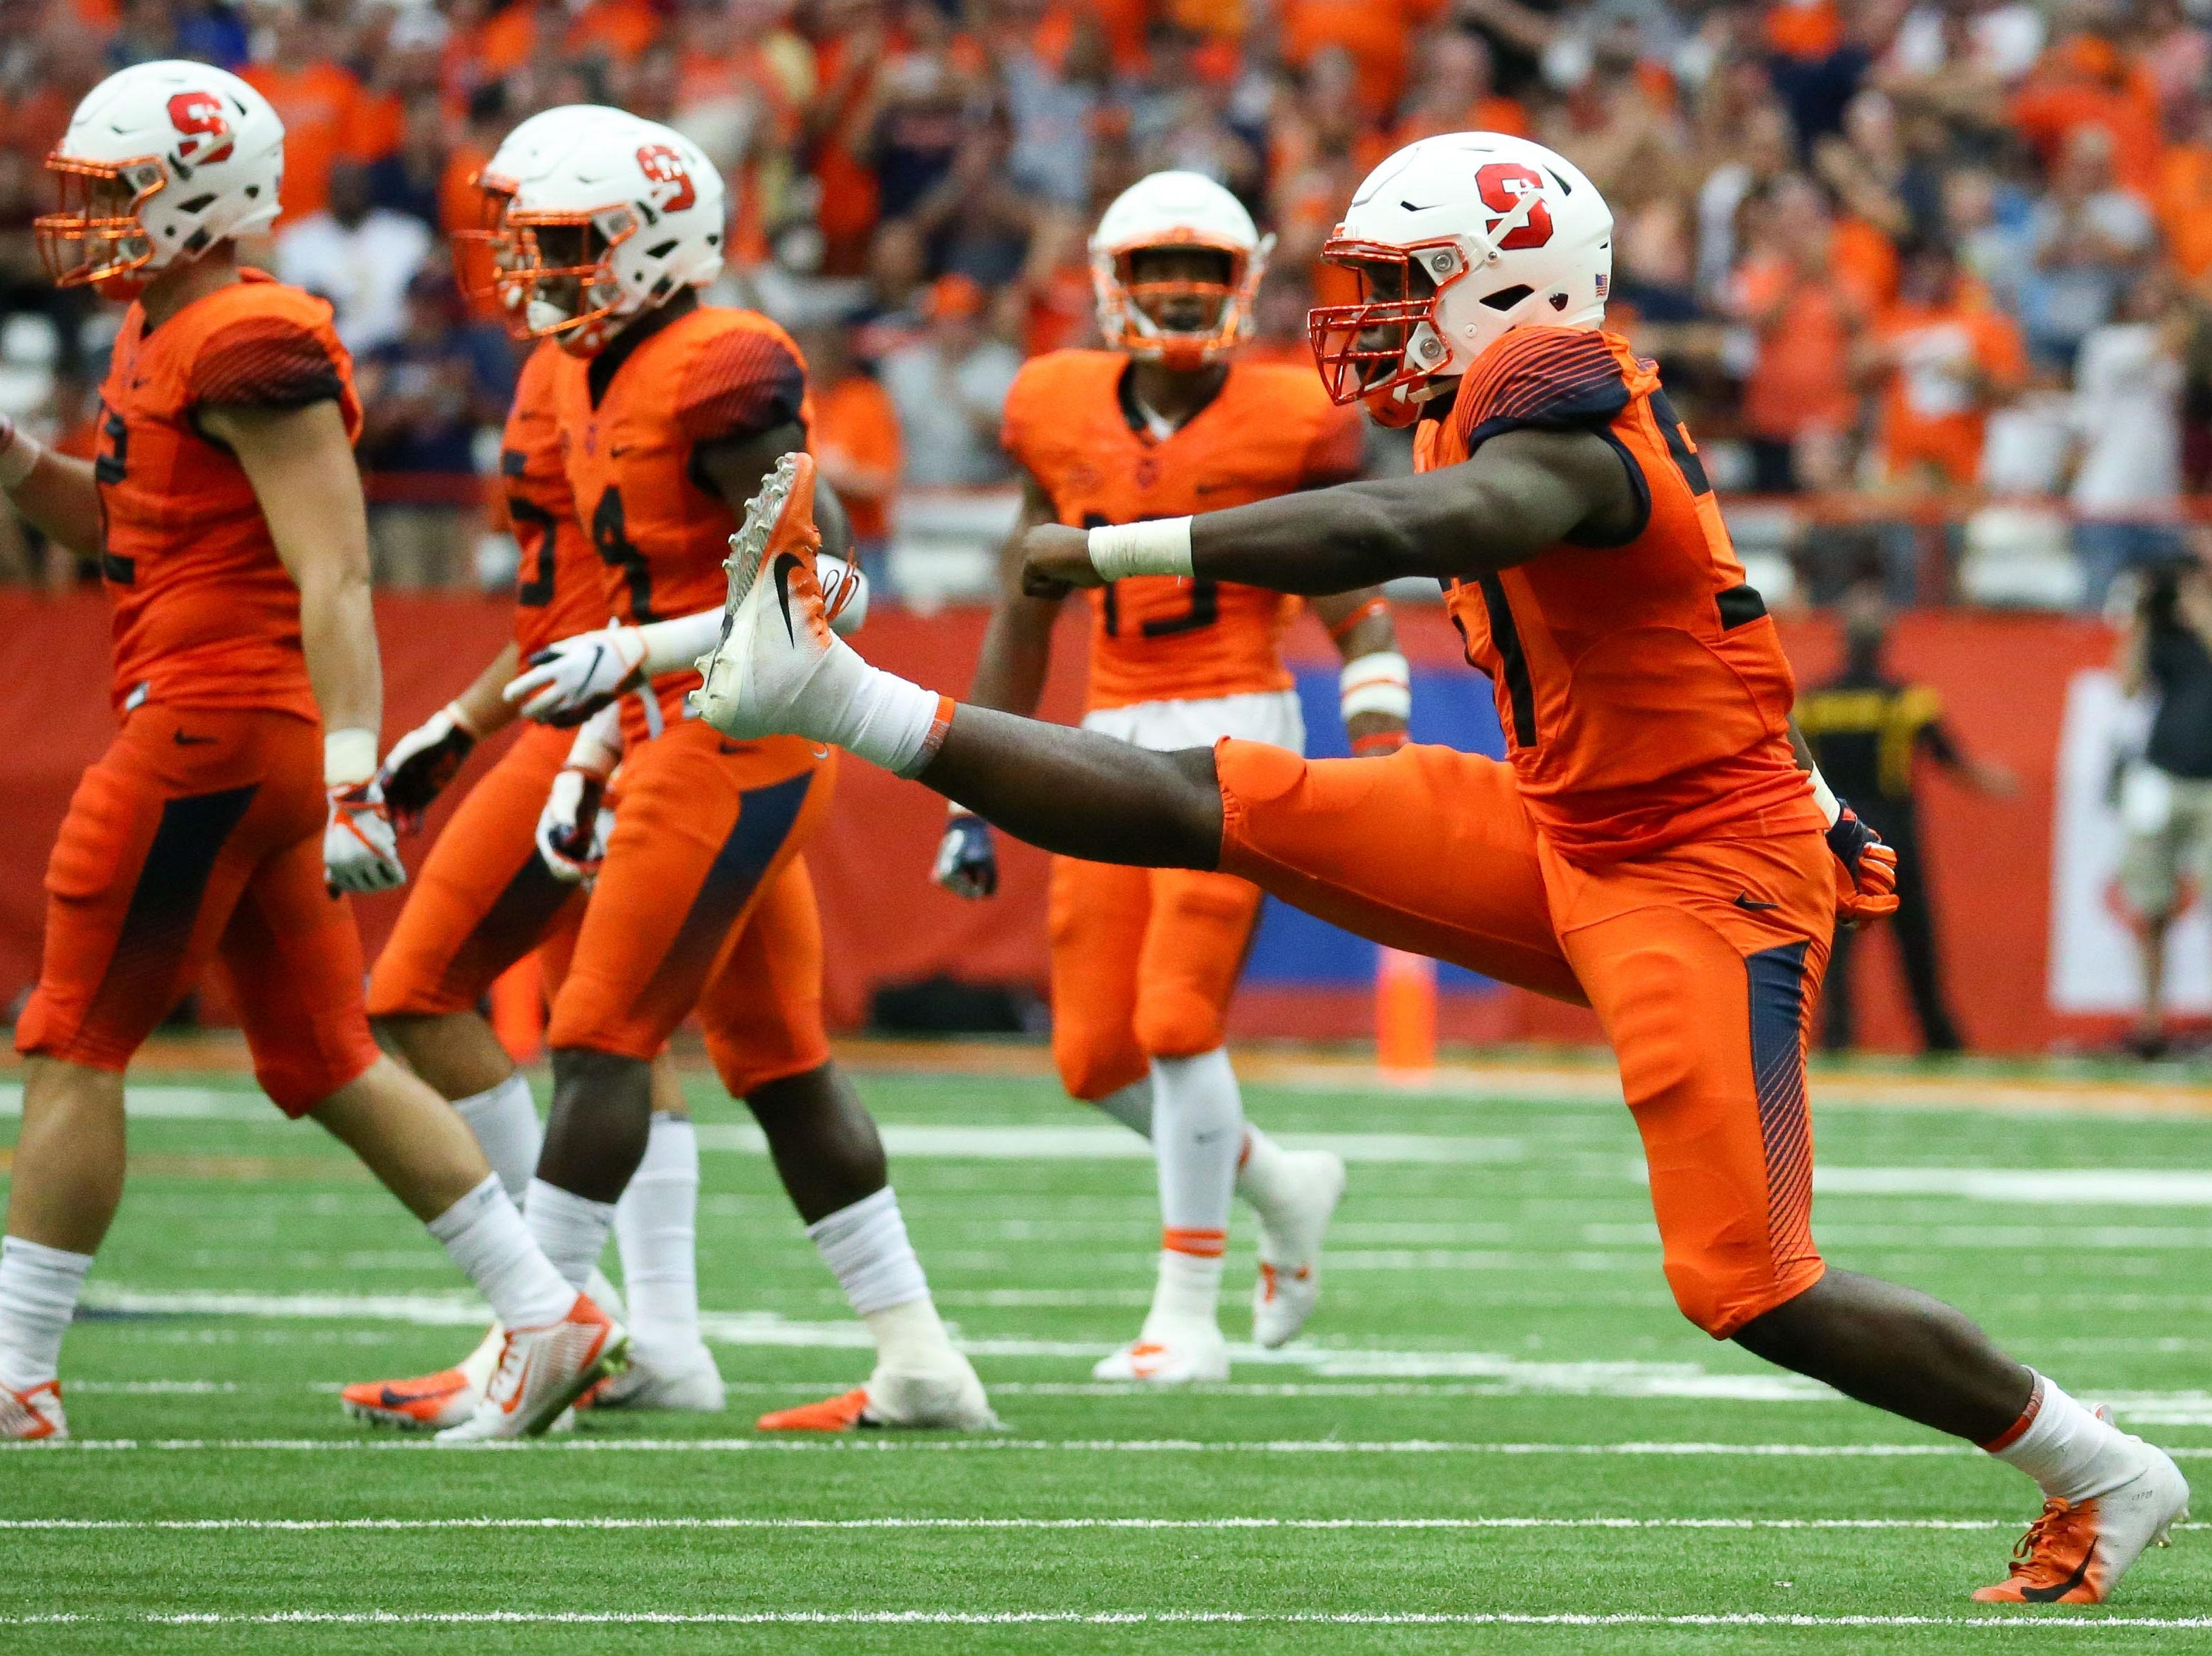 Syracuse Orange defensive lineman Kingsley Jonathan (57) celebrates his sack against the Florida State Seminoles during the third quarter at the Carrier Dome.